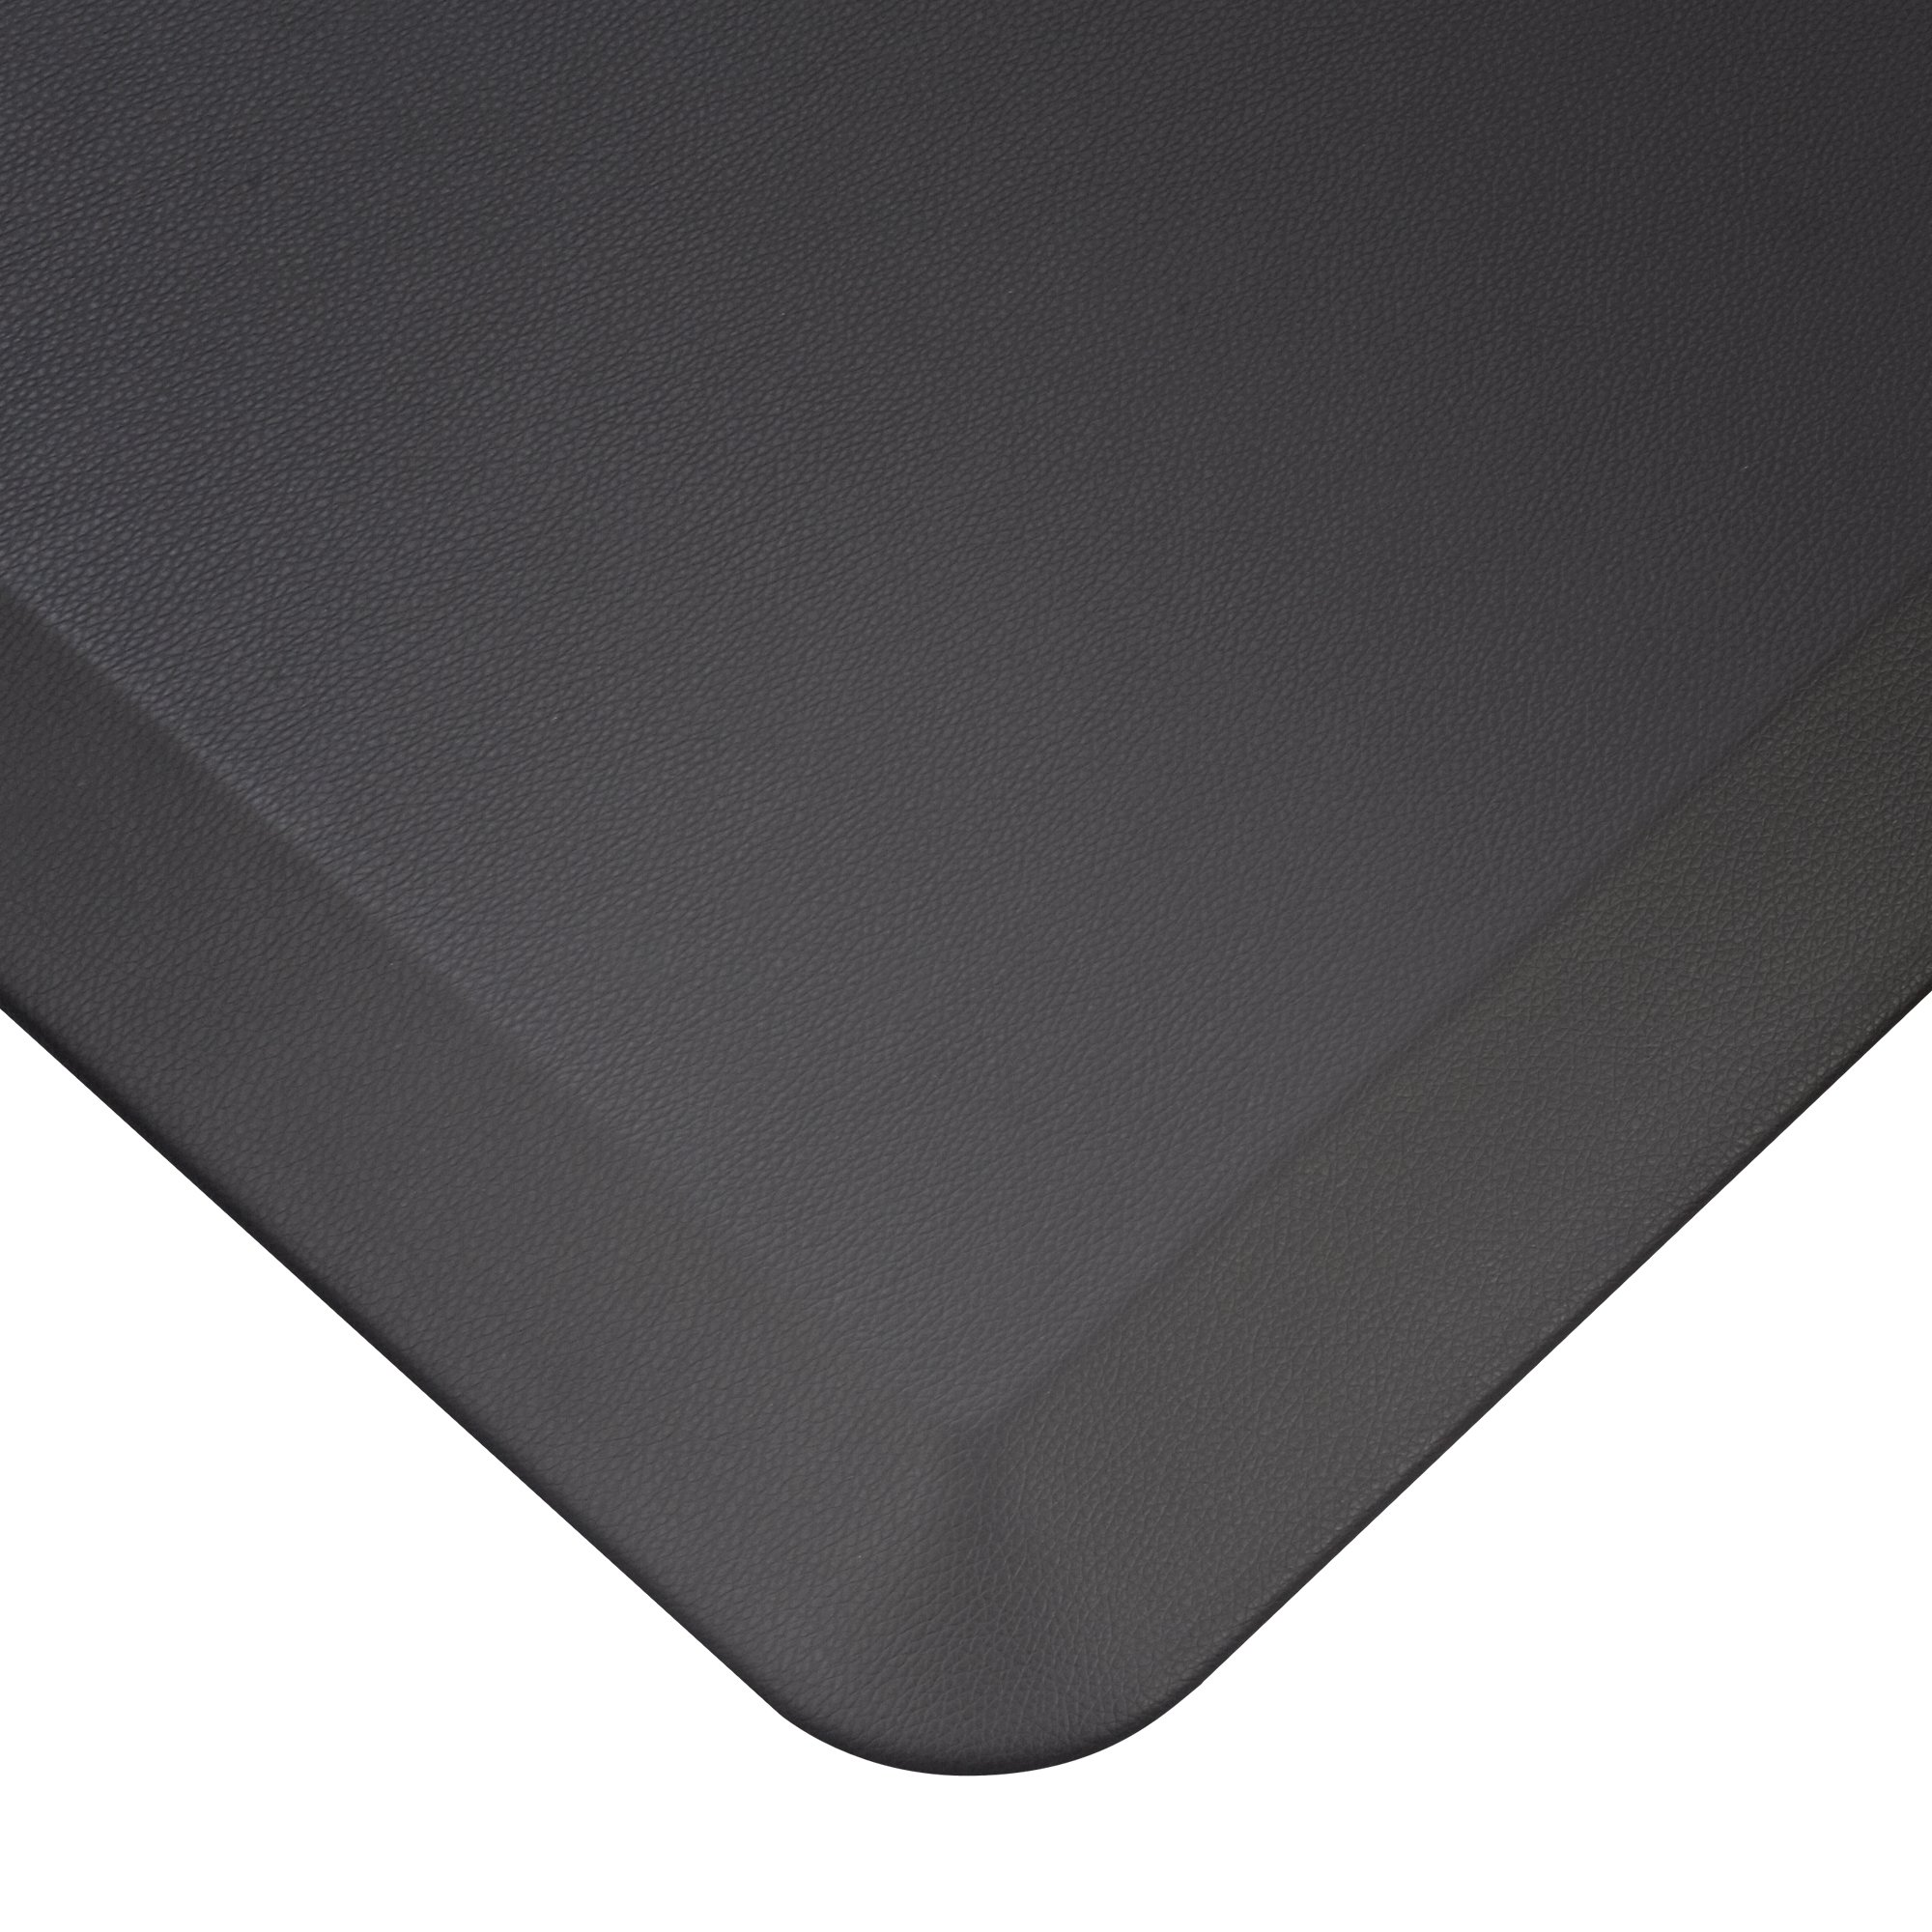 Cook N Home Anti-Fatigue Comfort Mat, 39 x 20'', Faux Leather, Black, 3/4'' Thickness